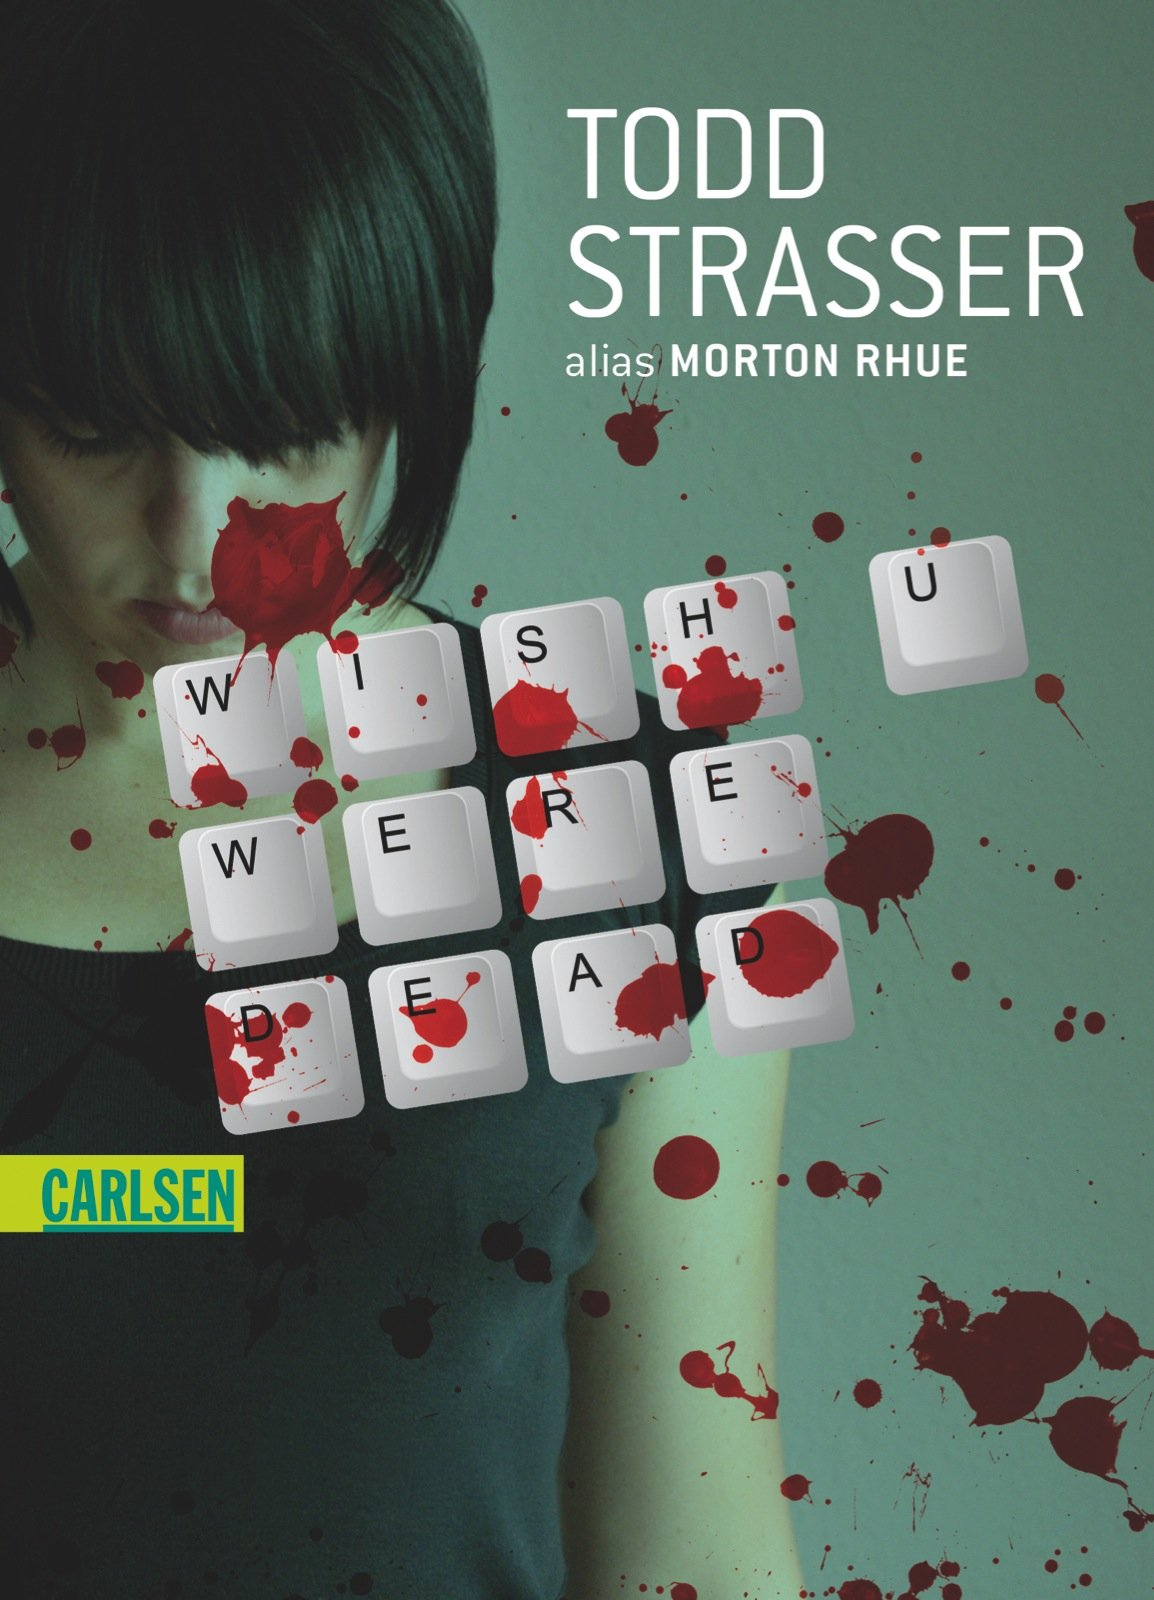 https://juliassammelsurium.blogspot.com/2019/03/rezension-wish-u-were-dead-todd-strasser_25.html